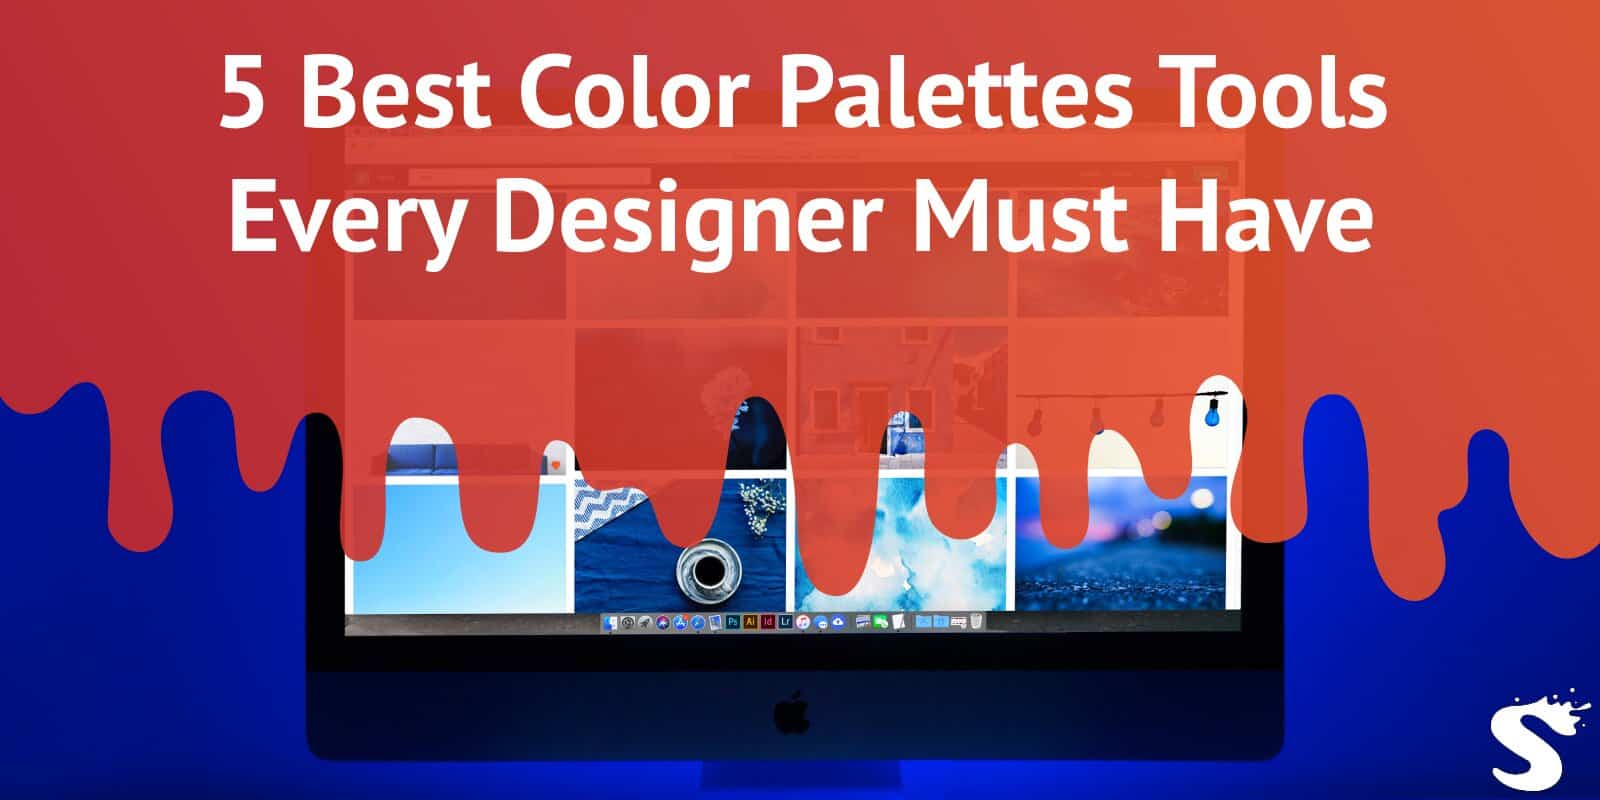 5 Best Color Palettes Tools Every Designer Must Have